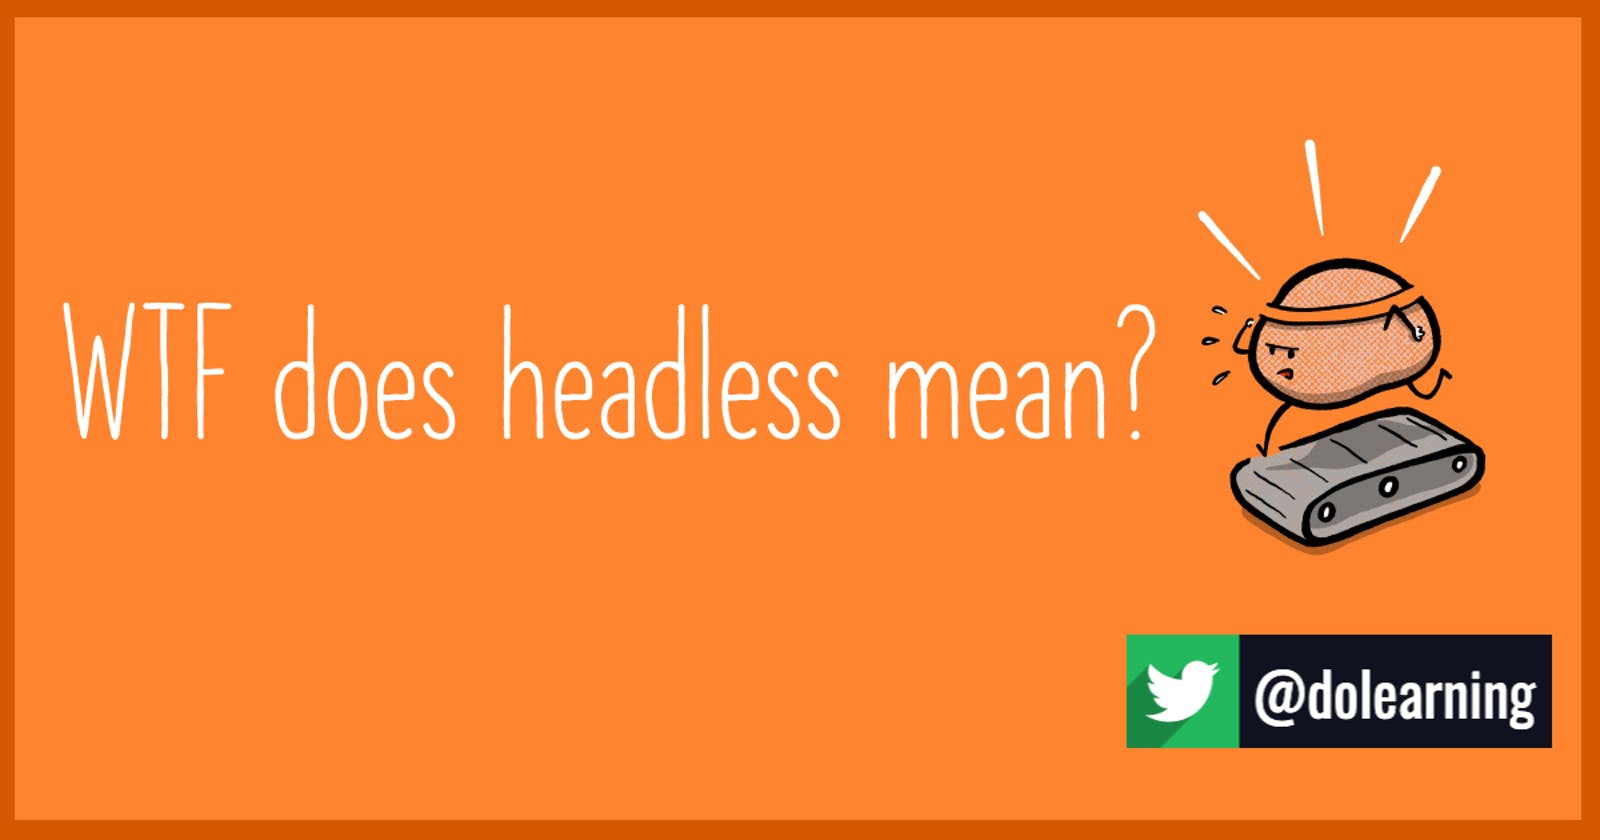 WTF does headless mean?